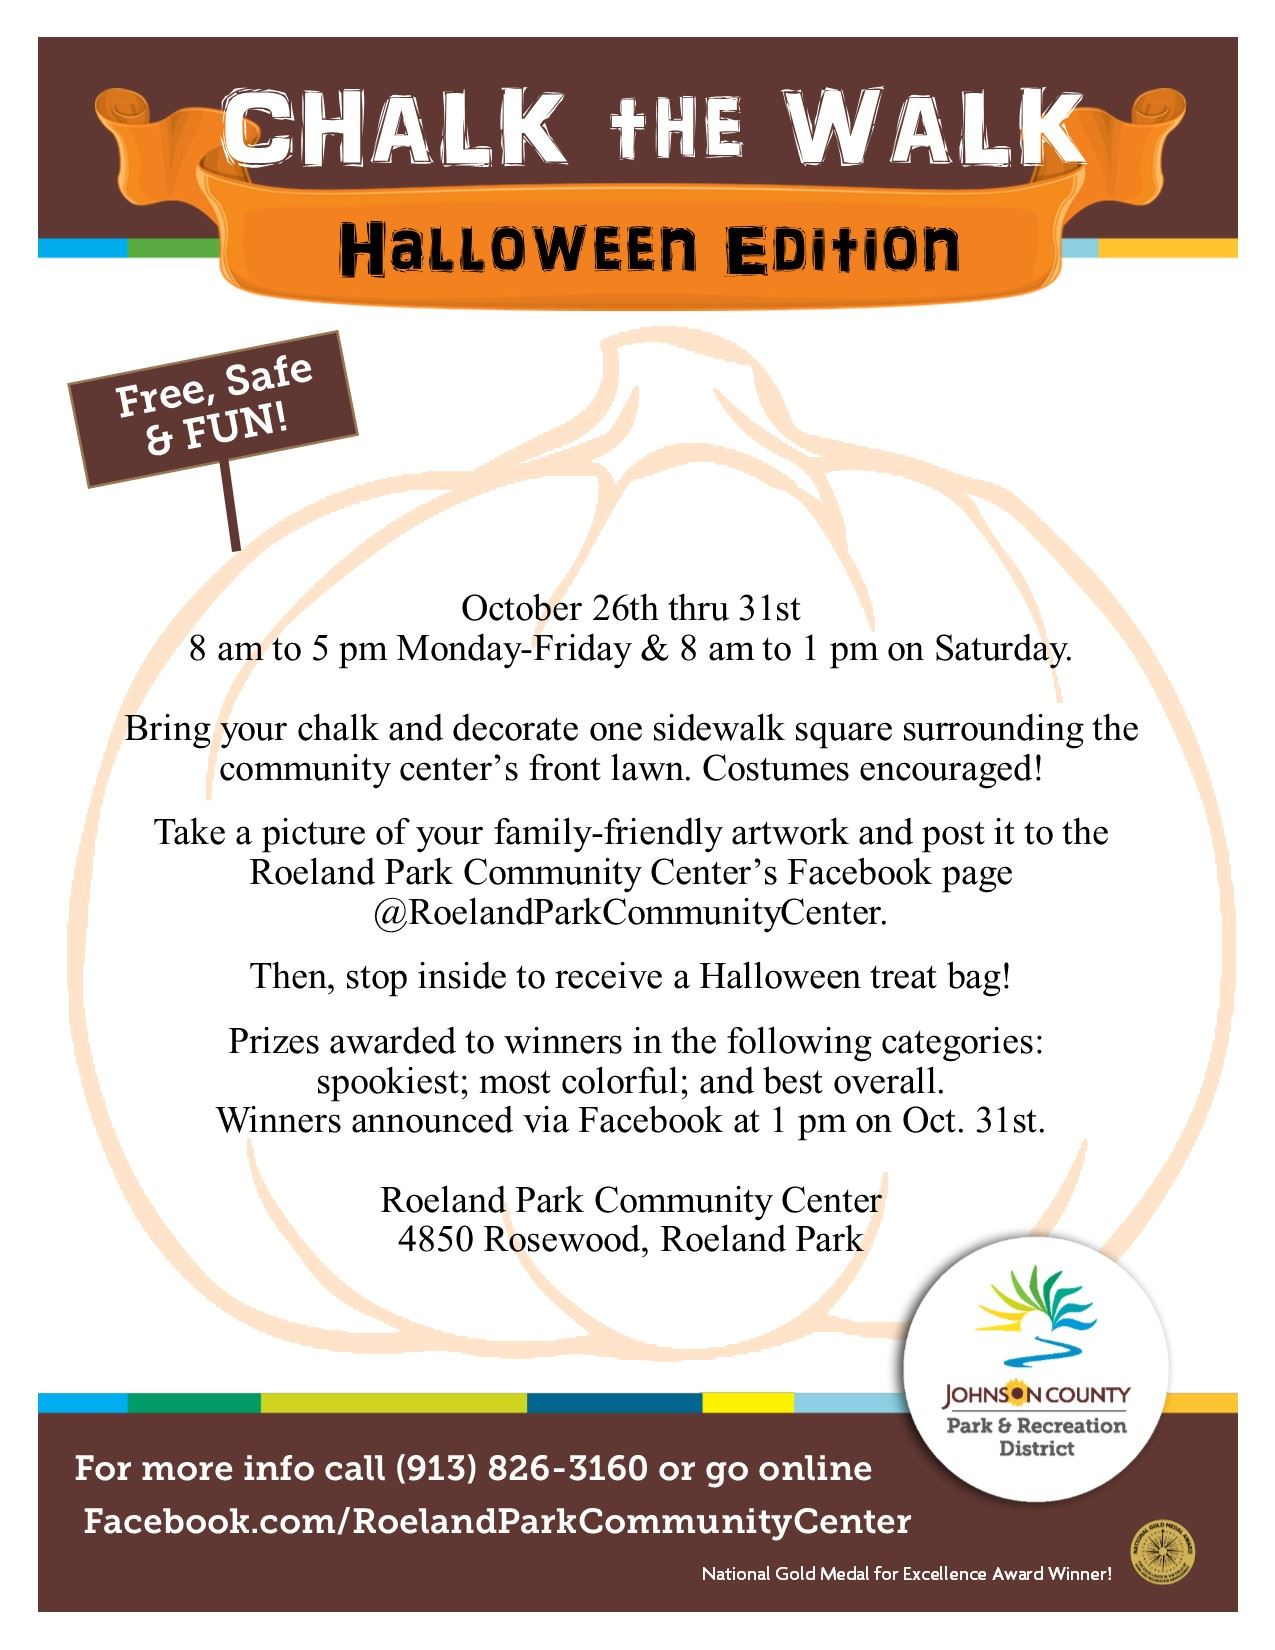 Halloween Chalk the Walk Flyer- Roeland Park Community Center